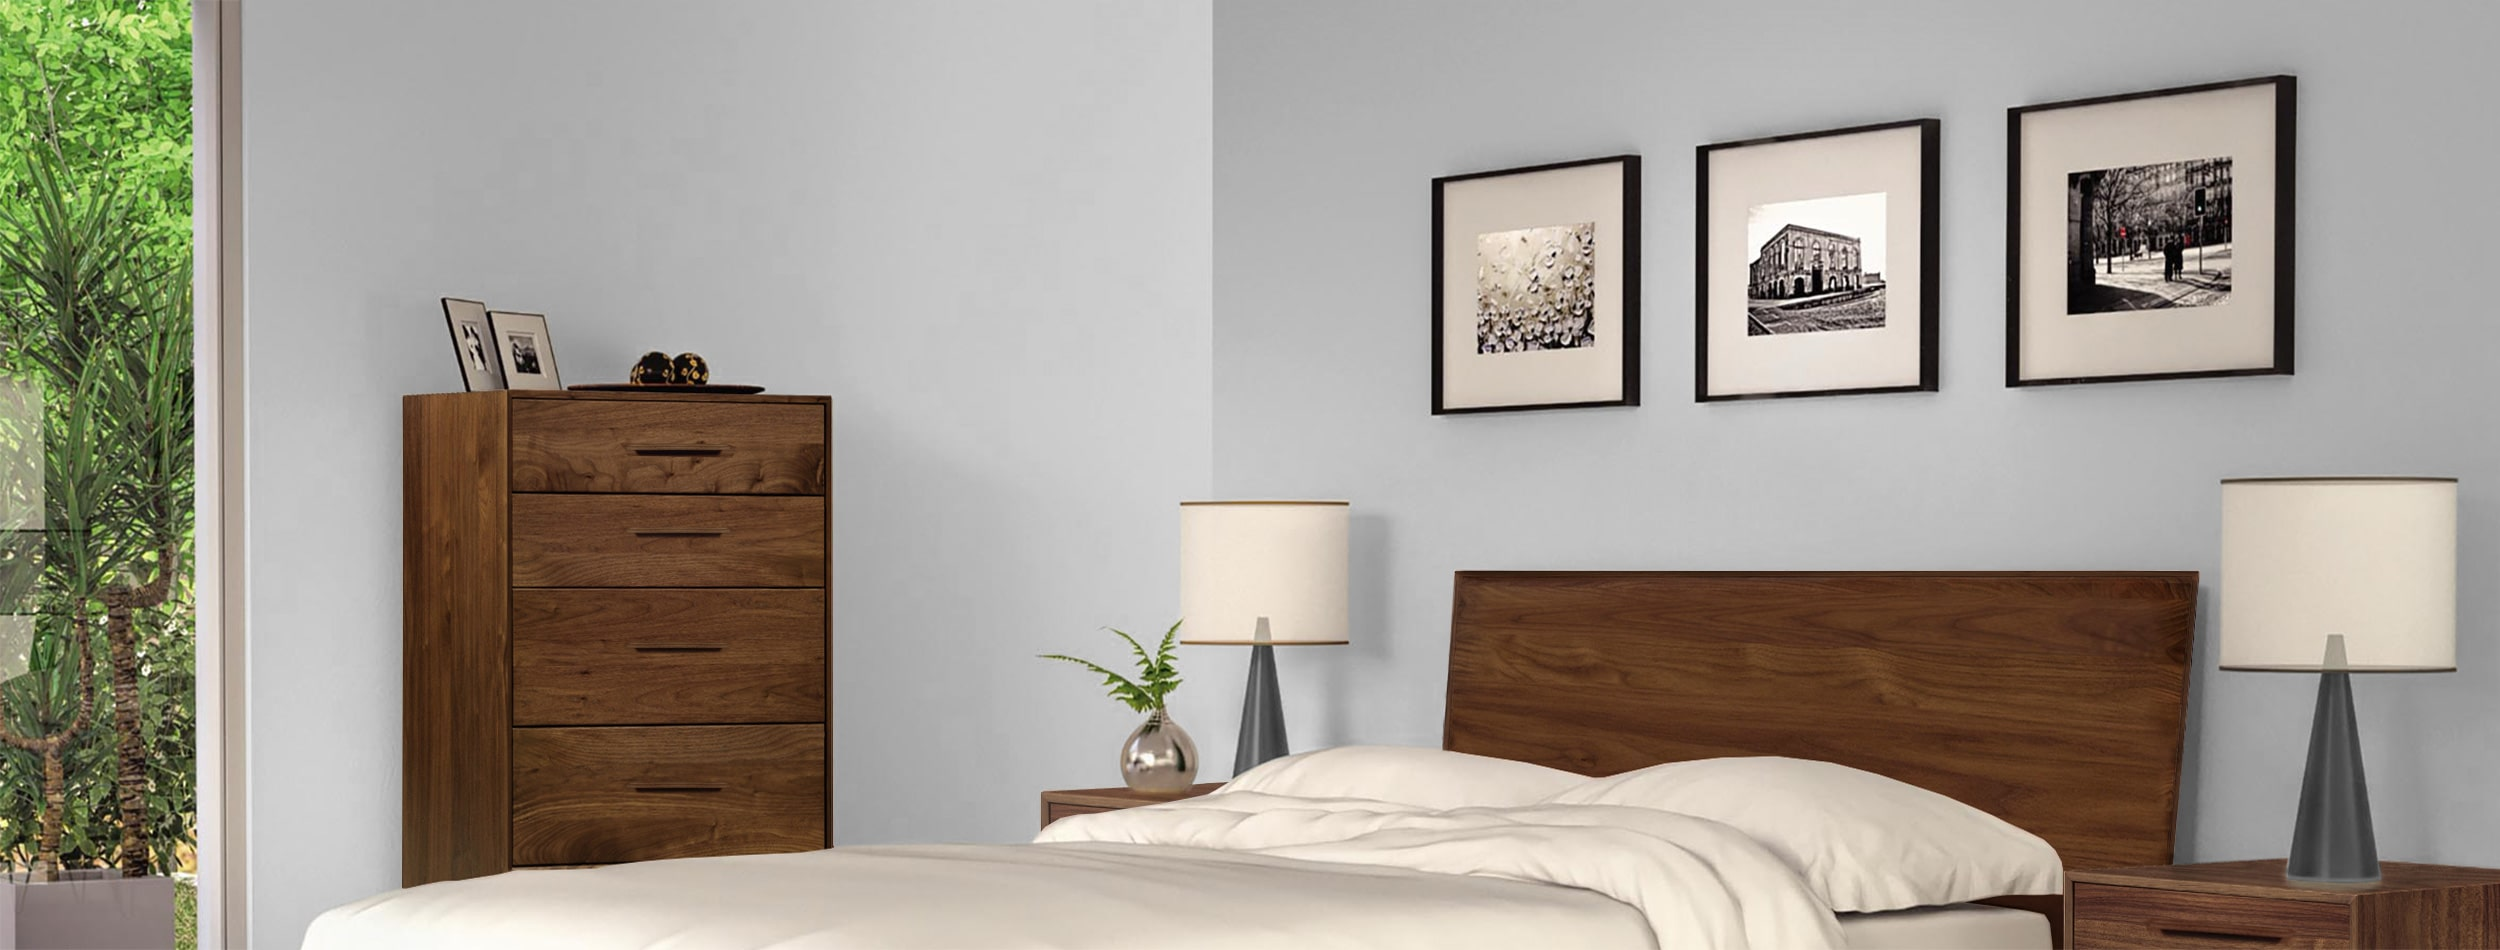 Soho Modern Platform Bed Room View